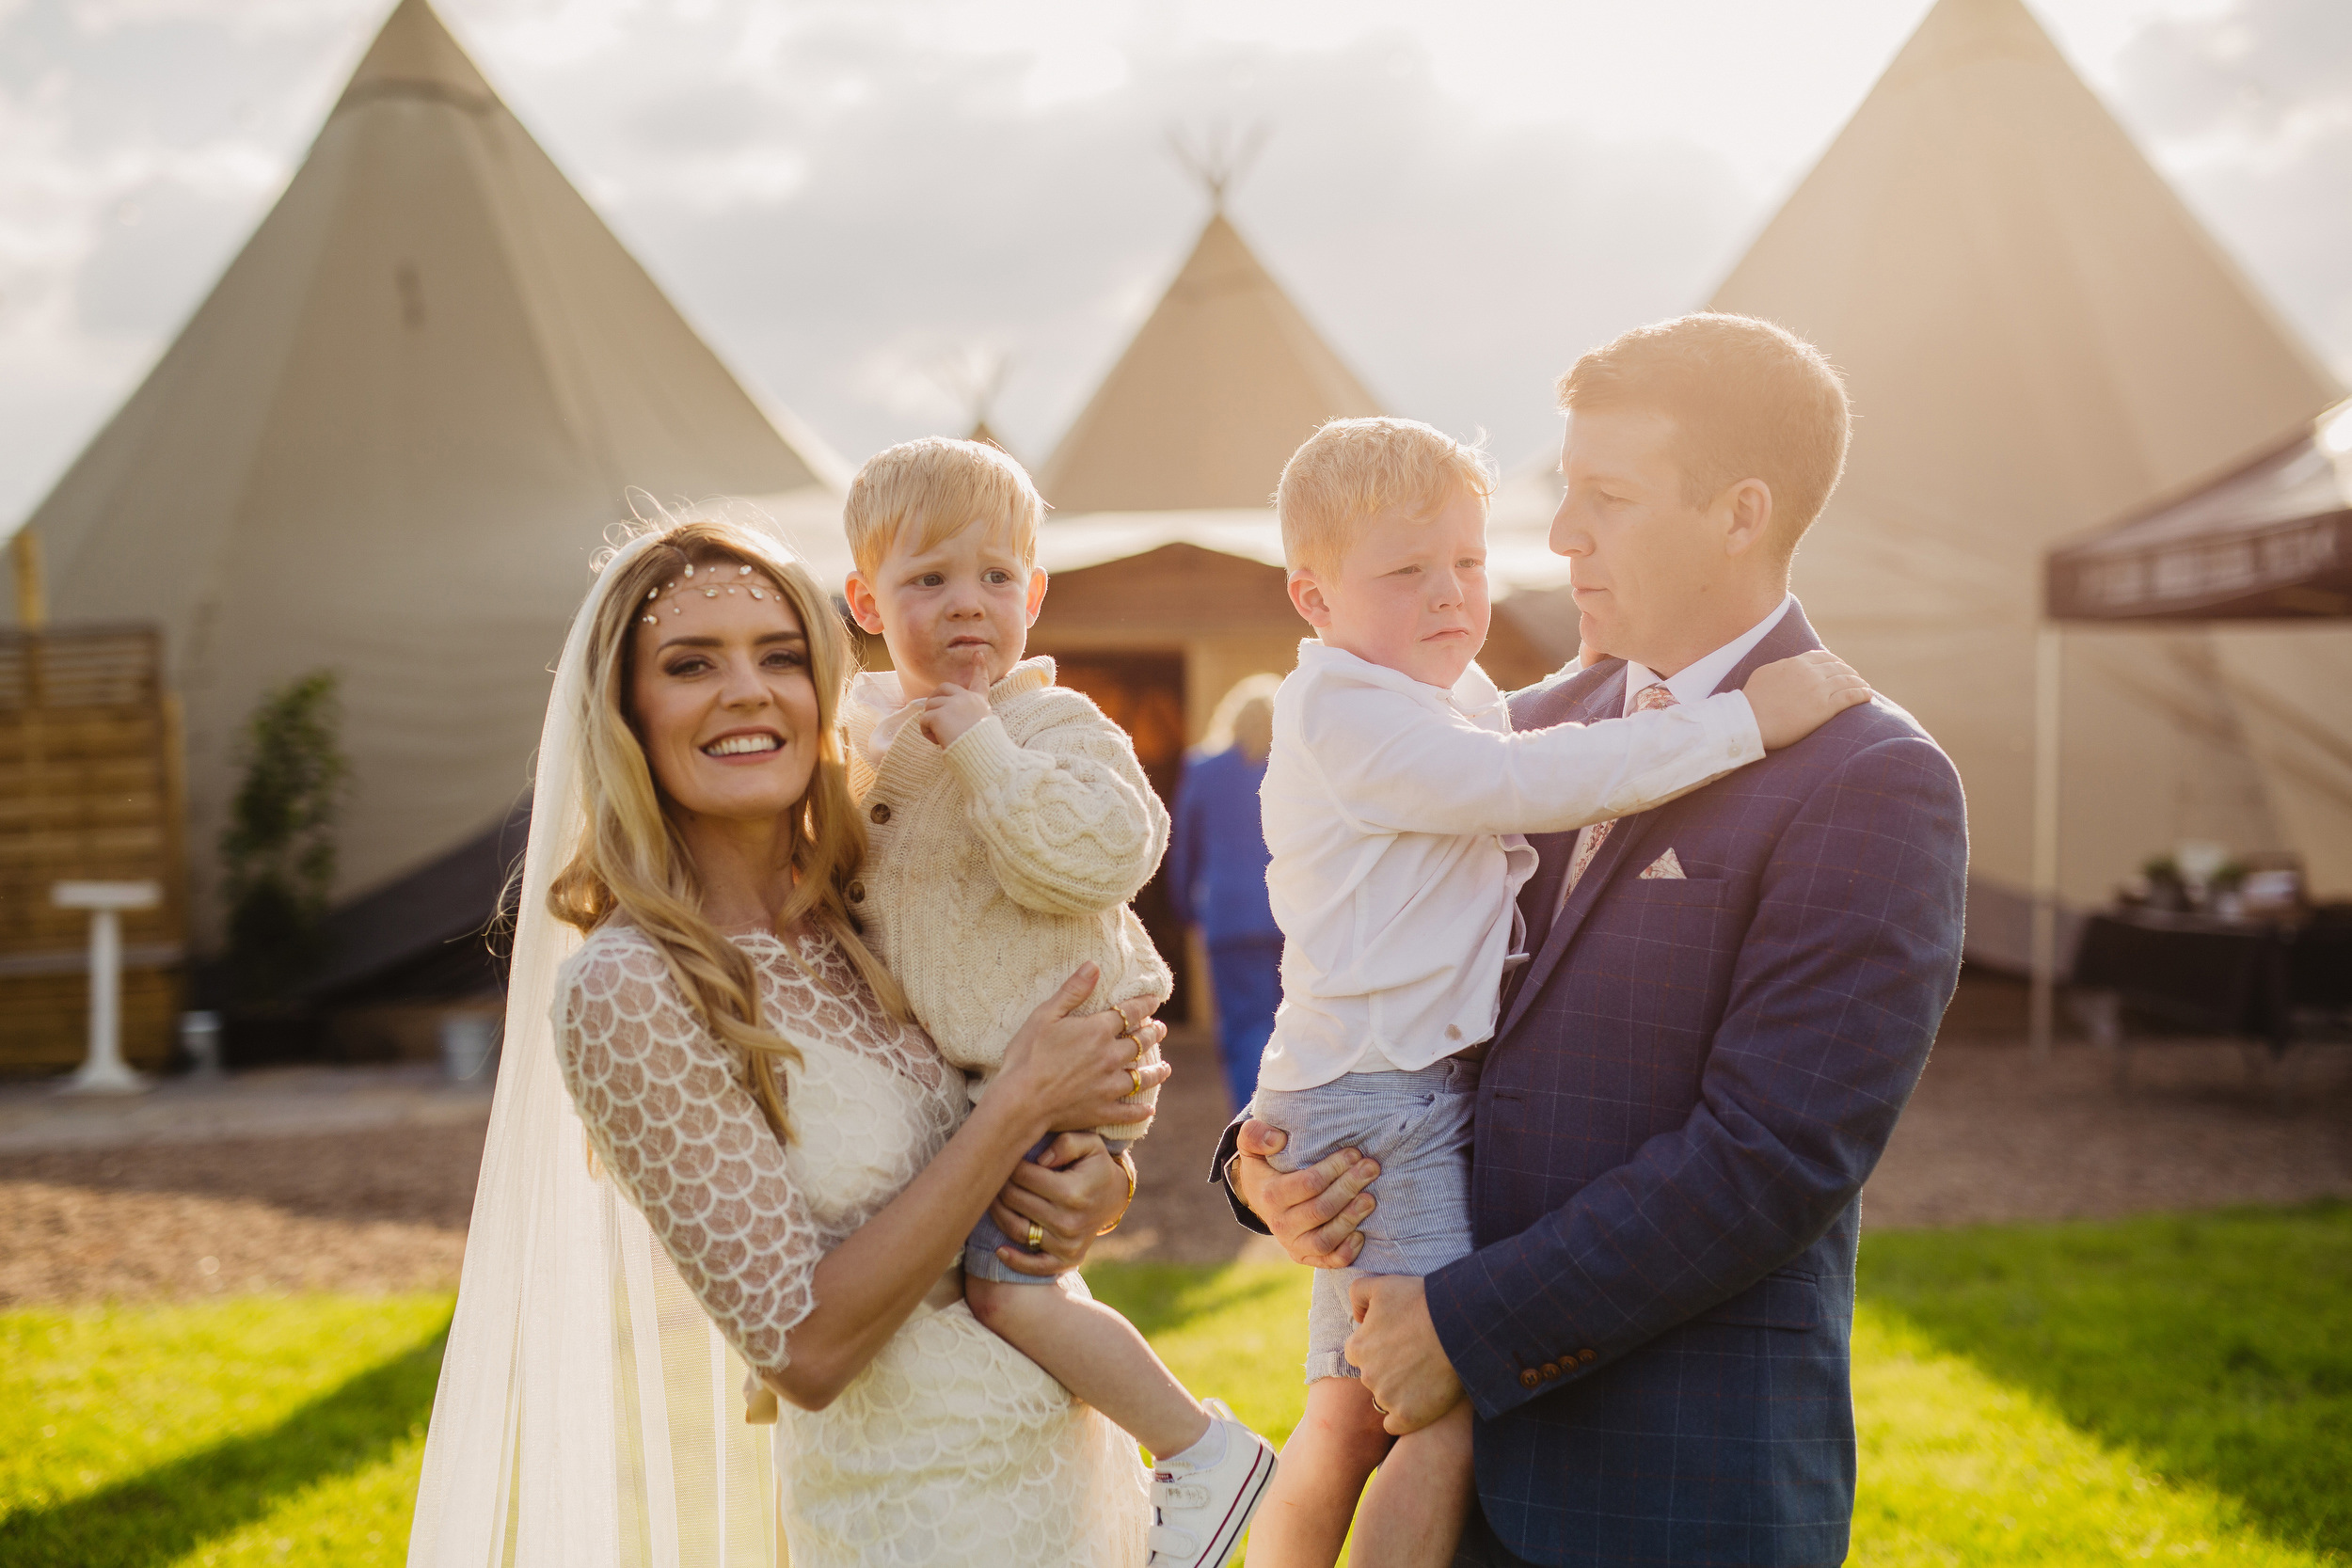 Gemma-Bohemian-Outdoor-Tipi-Wedding-Laid-Back-Relaxed-Family-Wedding-Kate-Beaumont-Astilbe-by-S6-Photography-Sheffield-37.jpg